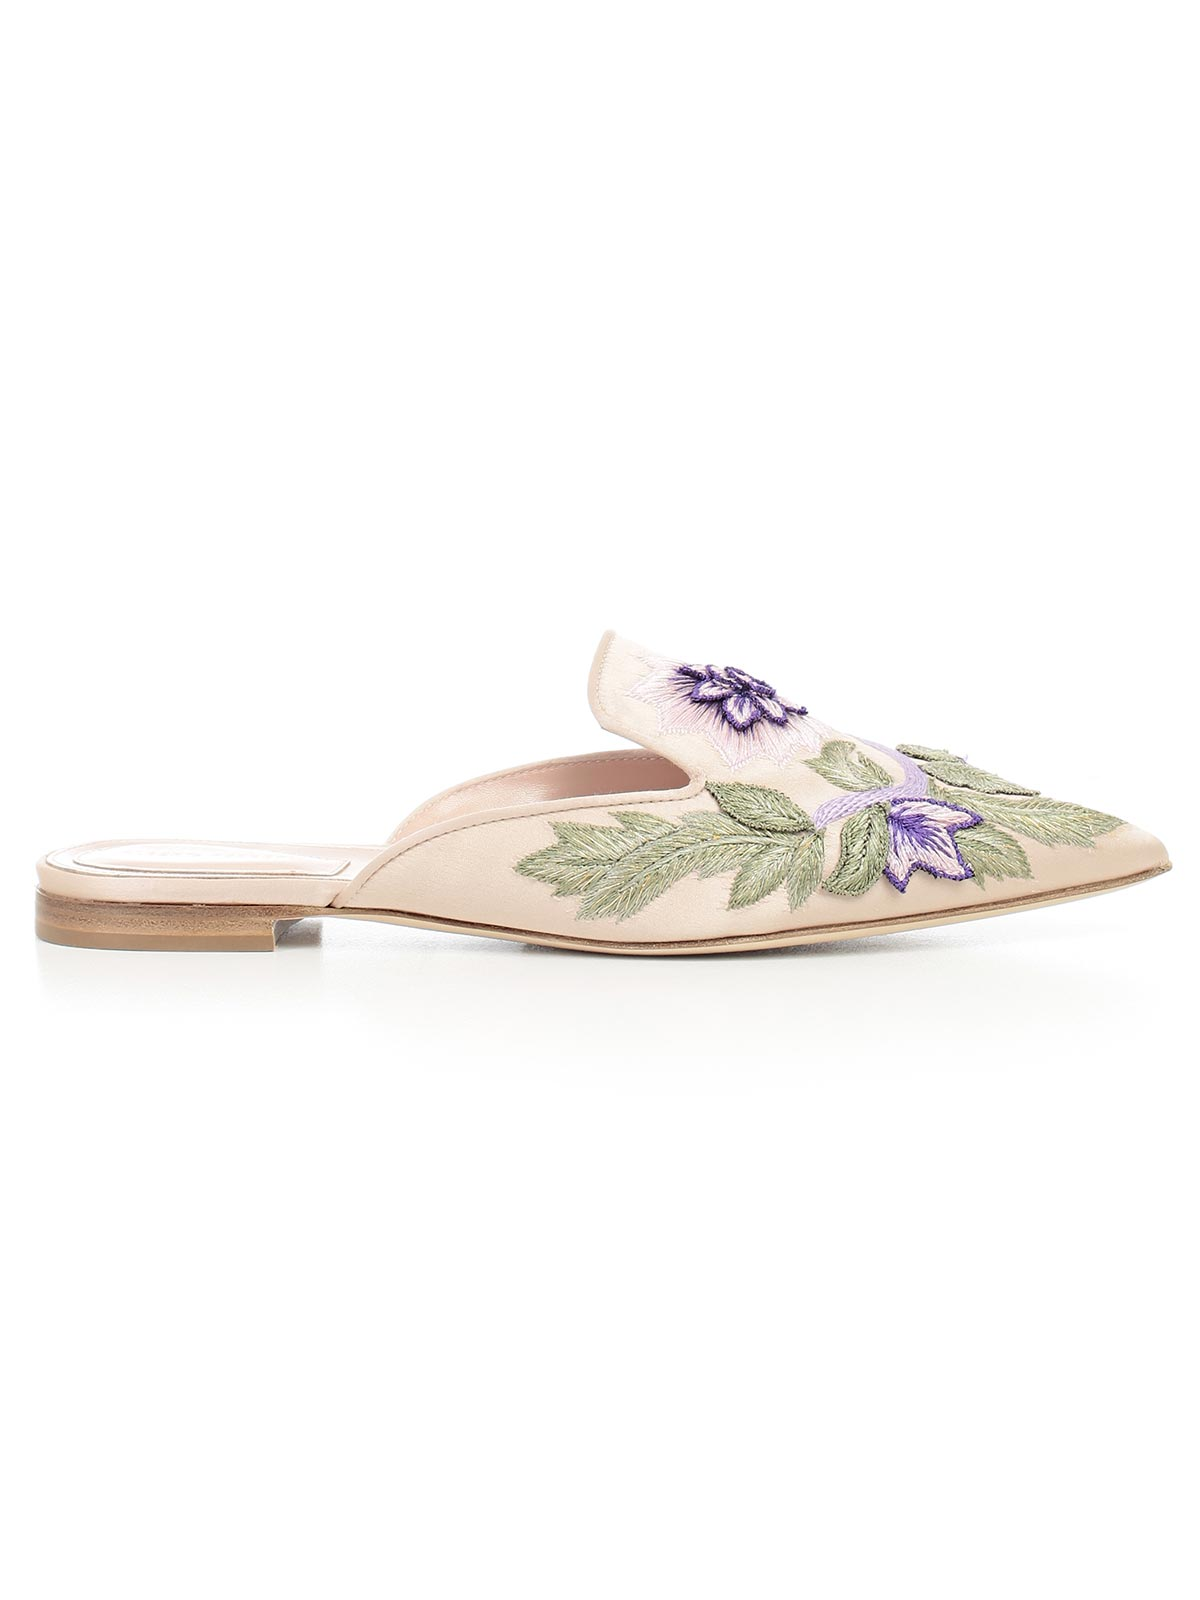 Picture of Alberta Ferretti Mules